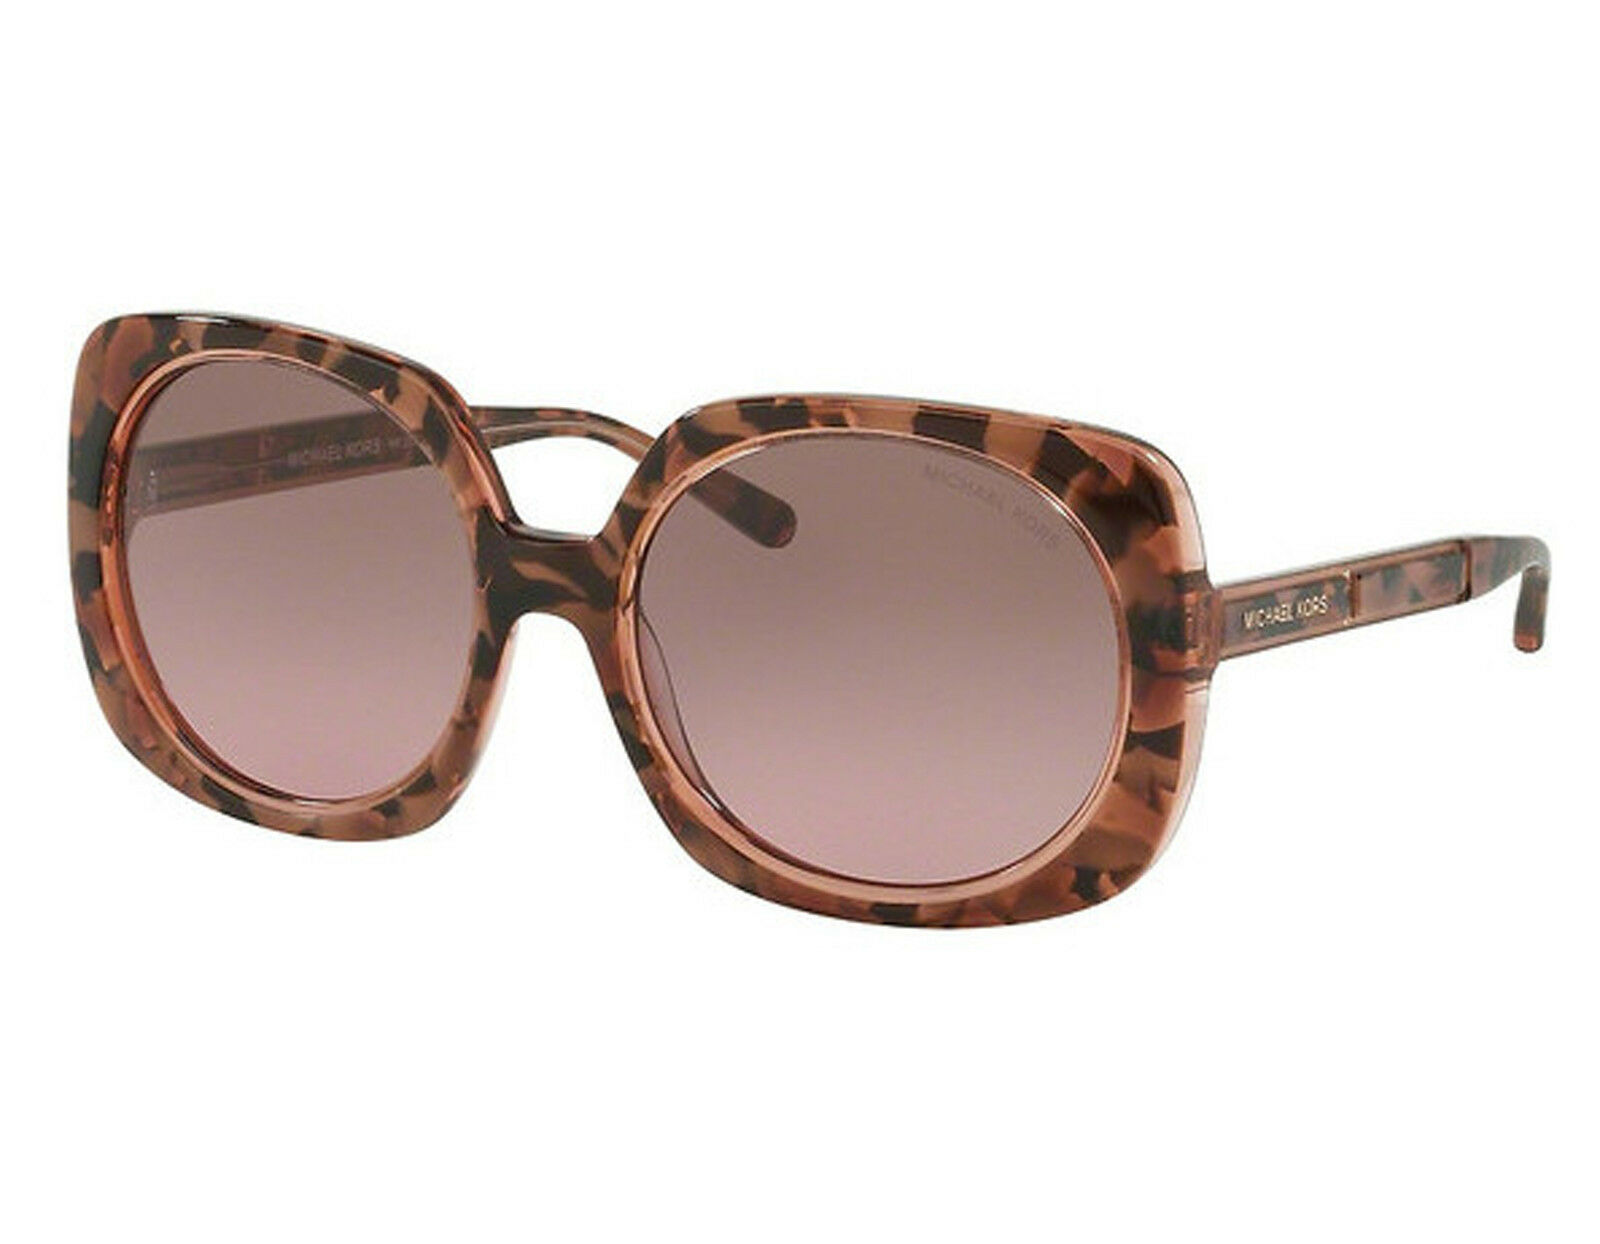 Michael Kors Damen Sonnenbrille Ula 325114, Pink Tort Graphic/Brownrosegradient, 55